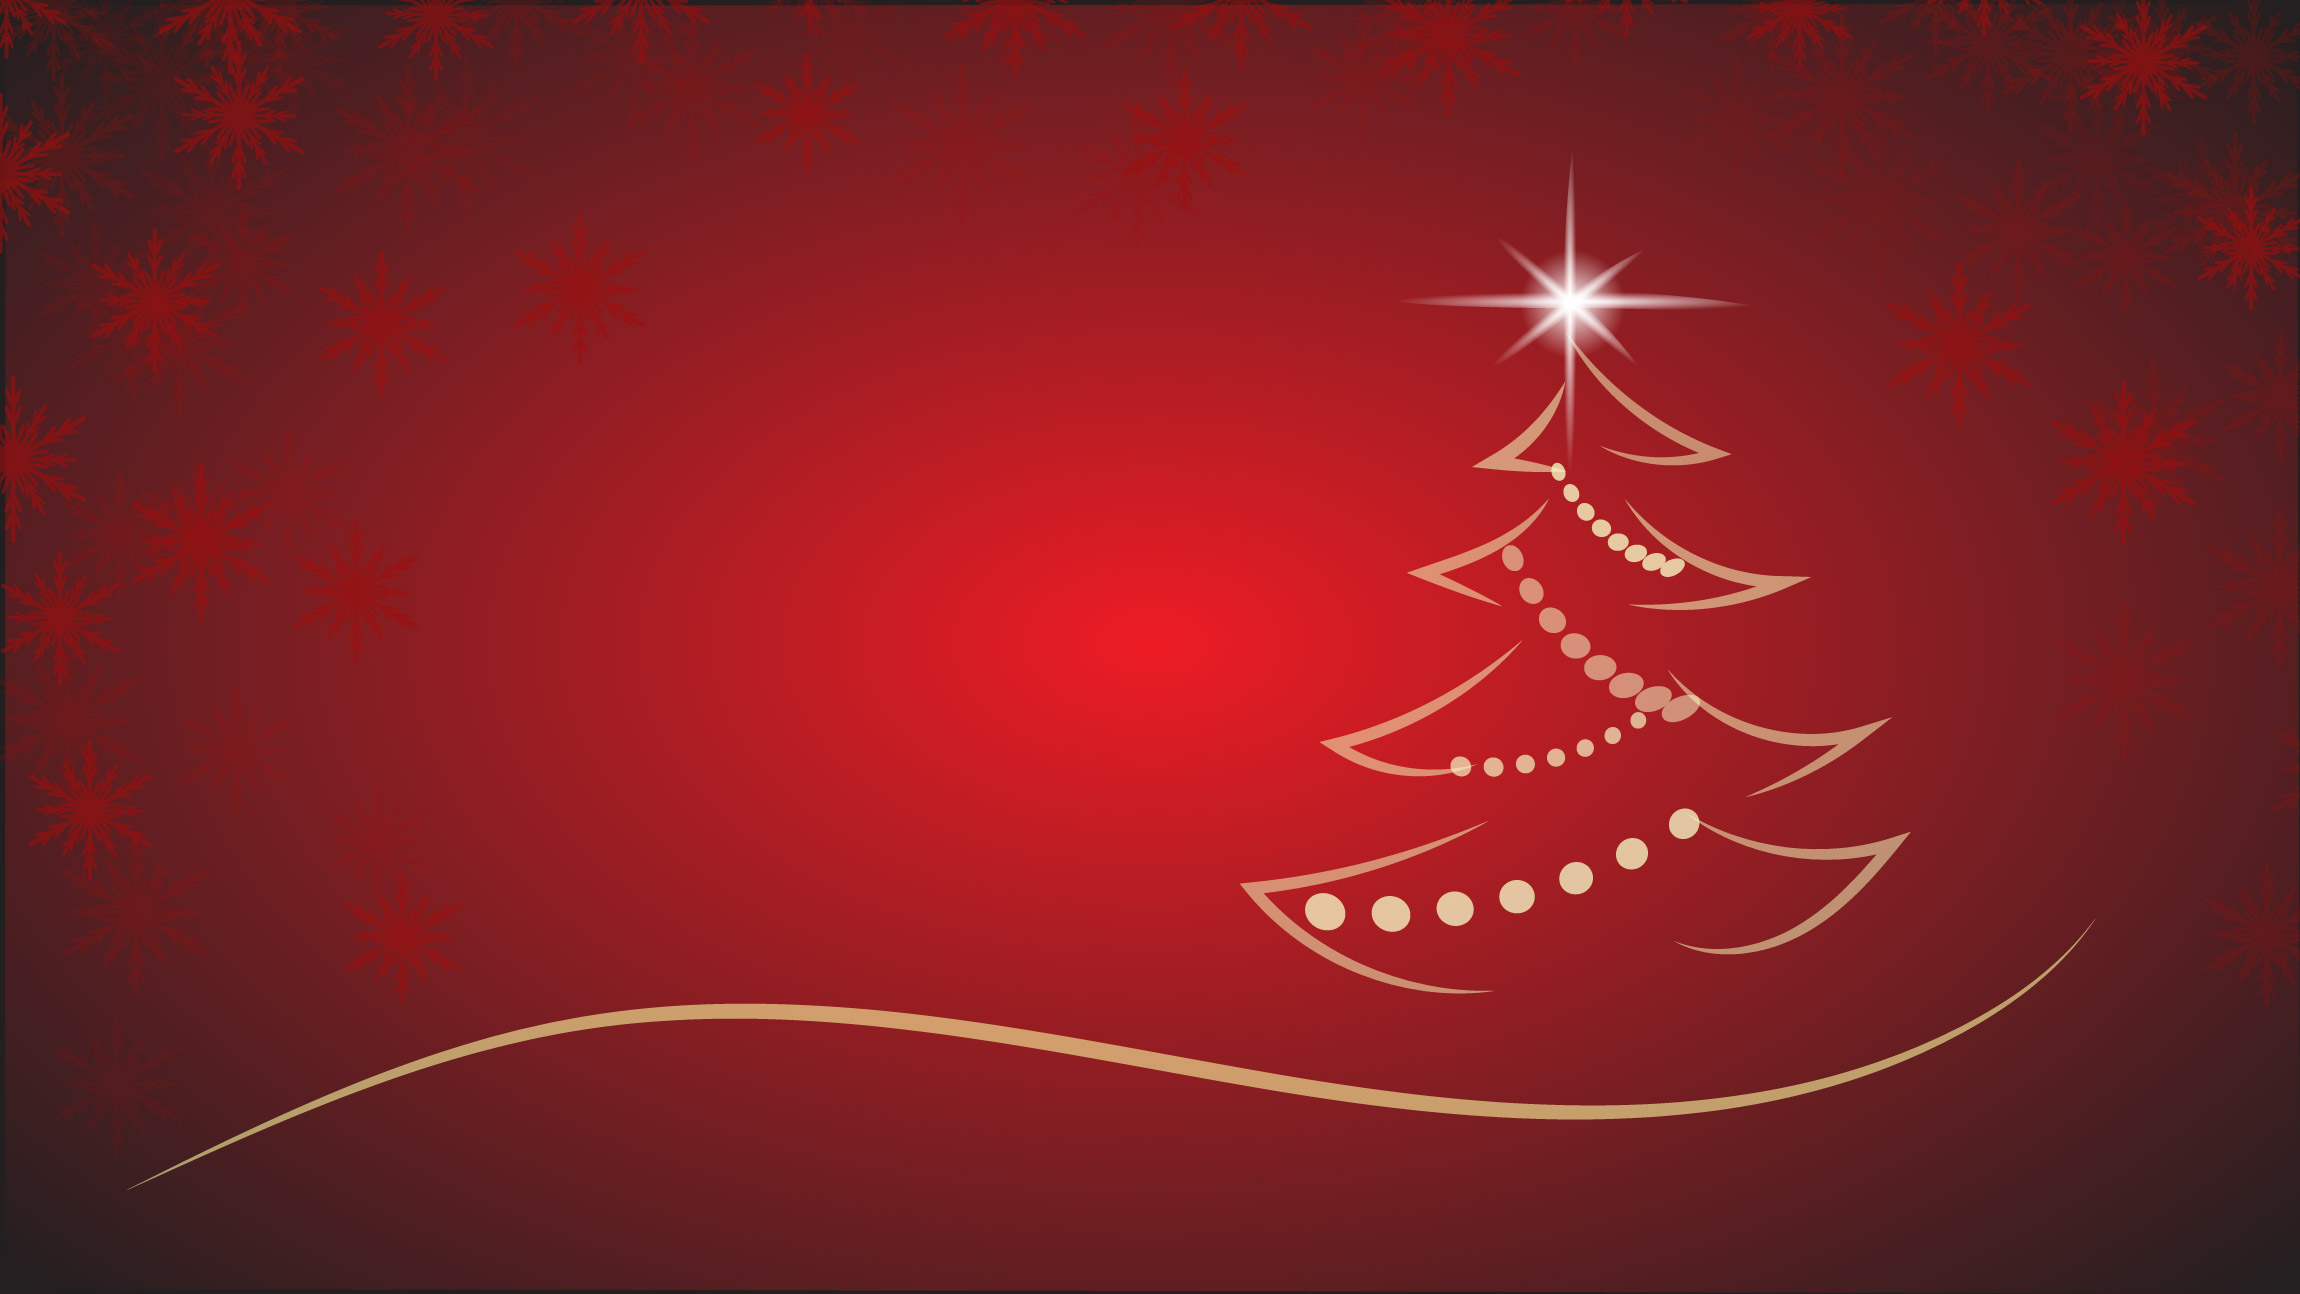 Christmas Tree Background Hd Celebrations 4k Wallpapers Images Backgrounds Photos And Pictures